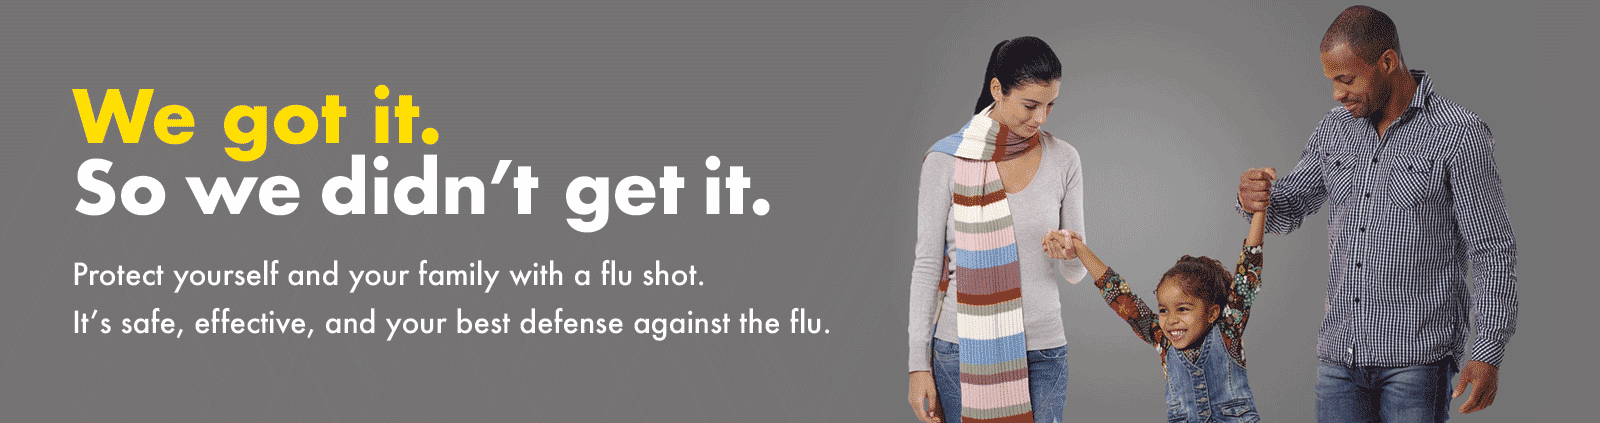 We got it. So we didn't get it. - Protect yourself and your family with a flu shot. It's safe, effective, and your best defense against the flu.